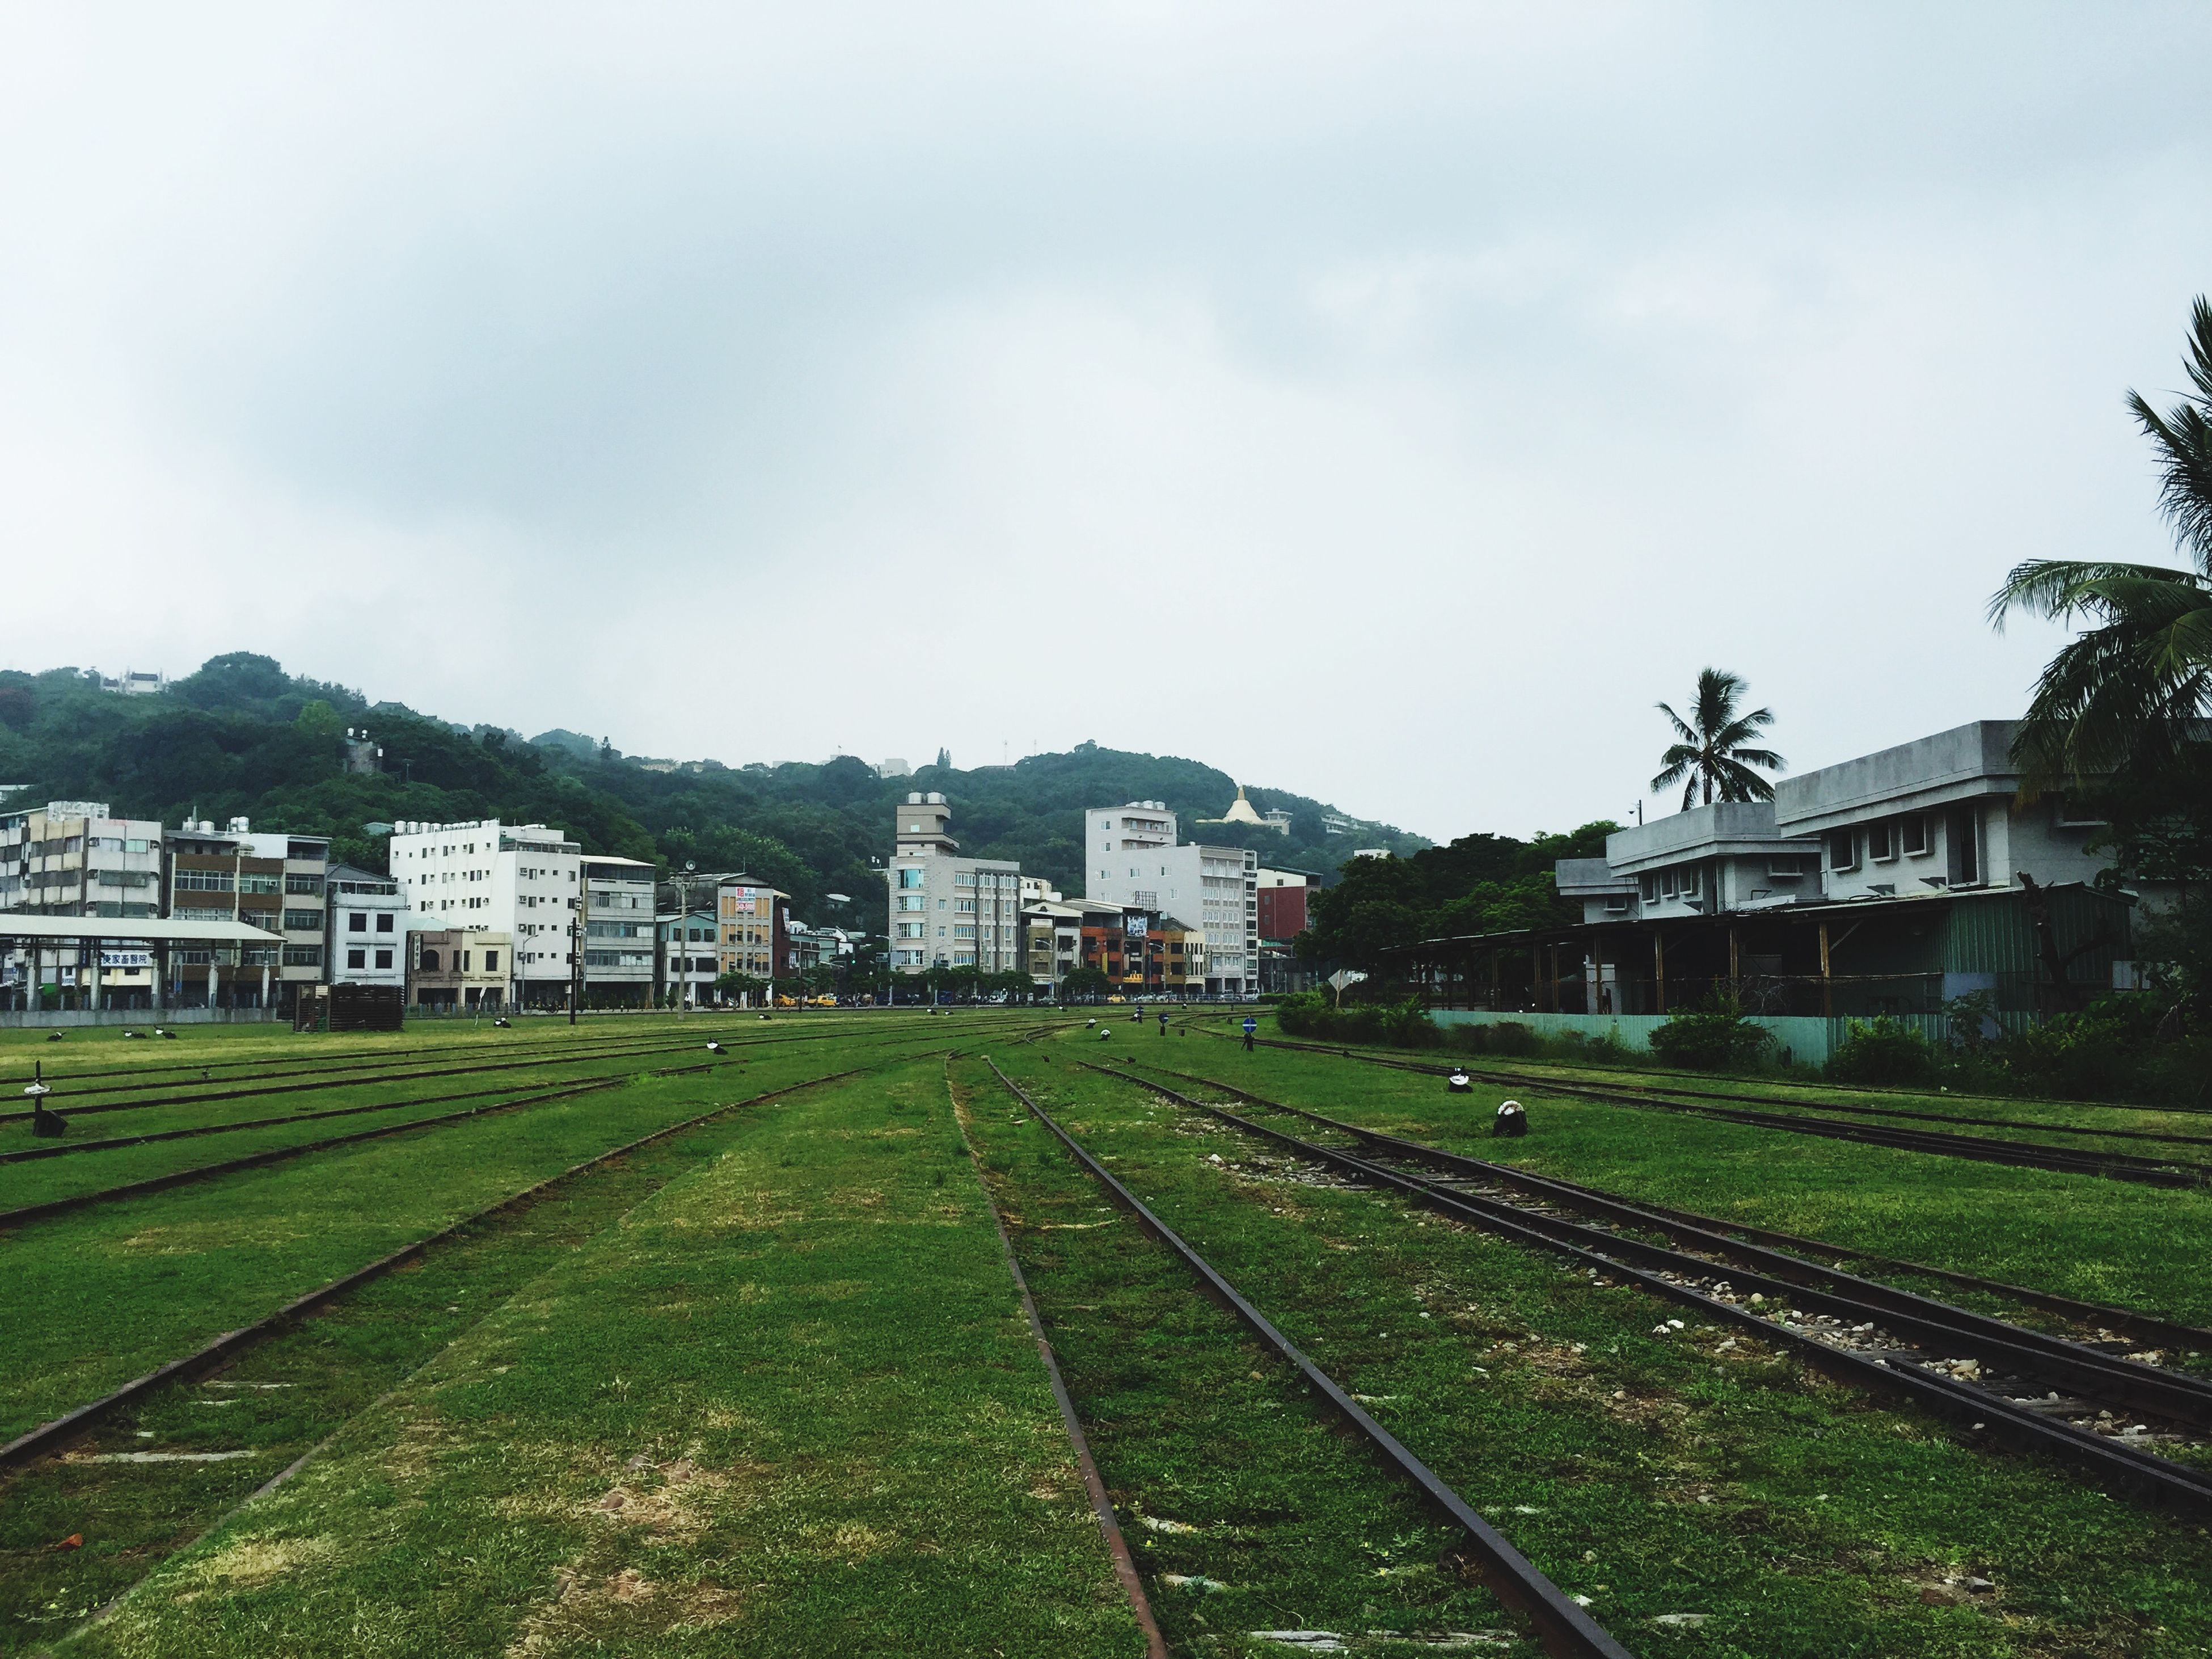 building exterior, architecture, built structure, sky, grass, house, green color, residential structure, cloud - sky, tree, transportation, city, residential building, day, cloud, field, residential district, outdoors, railroad track, growth